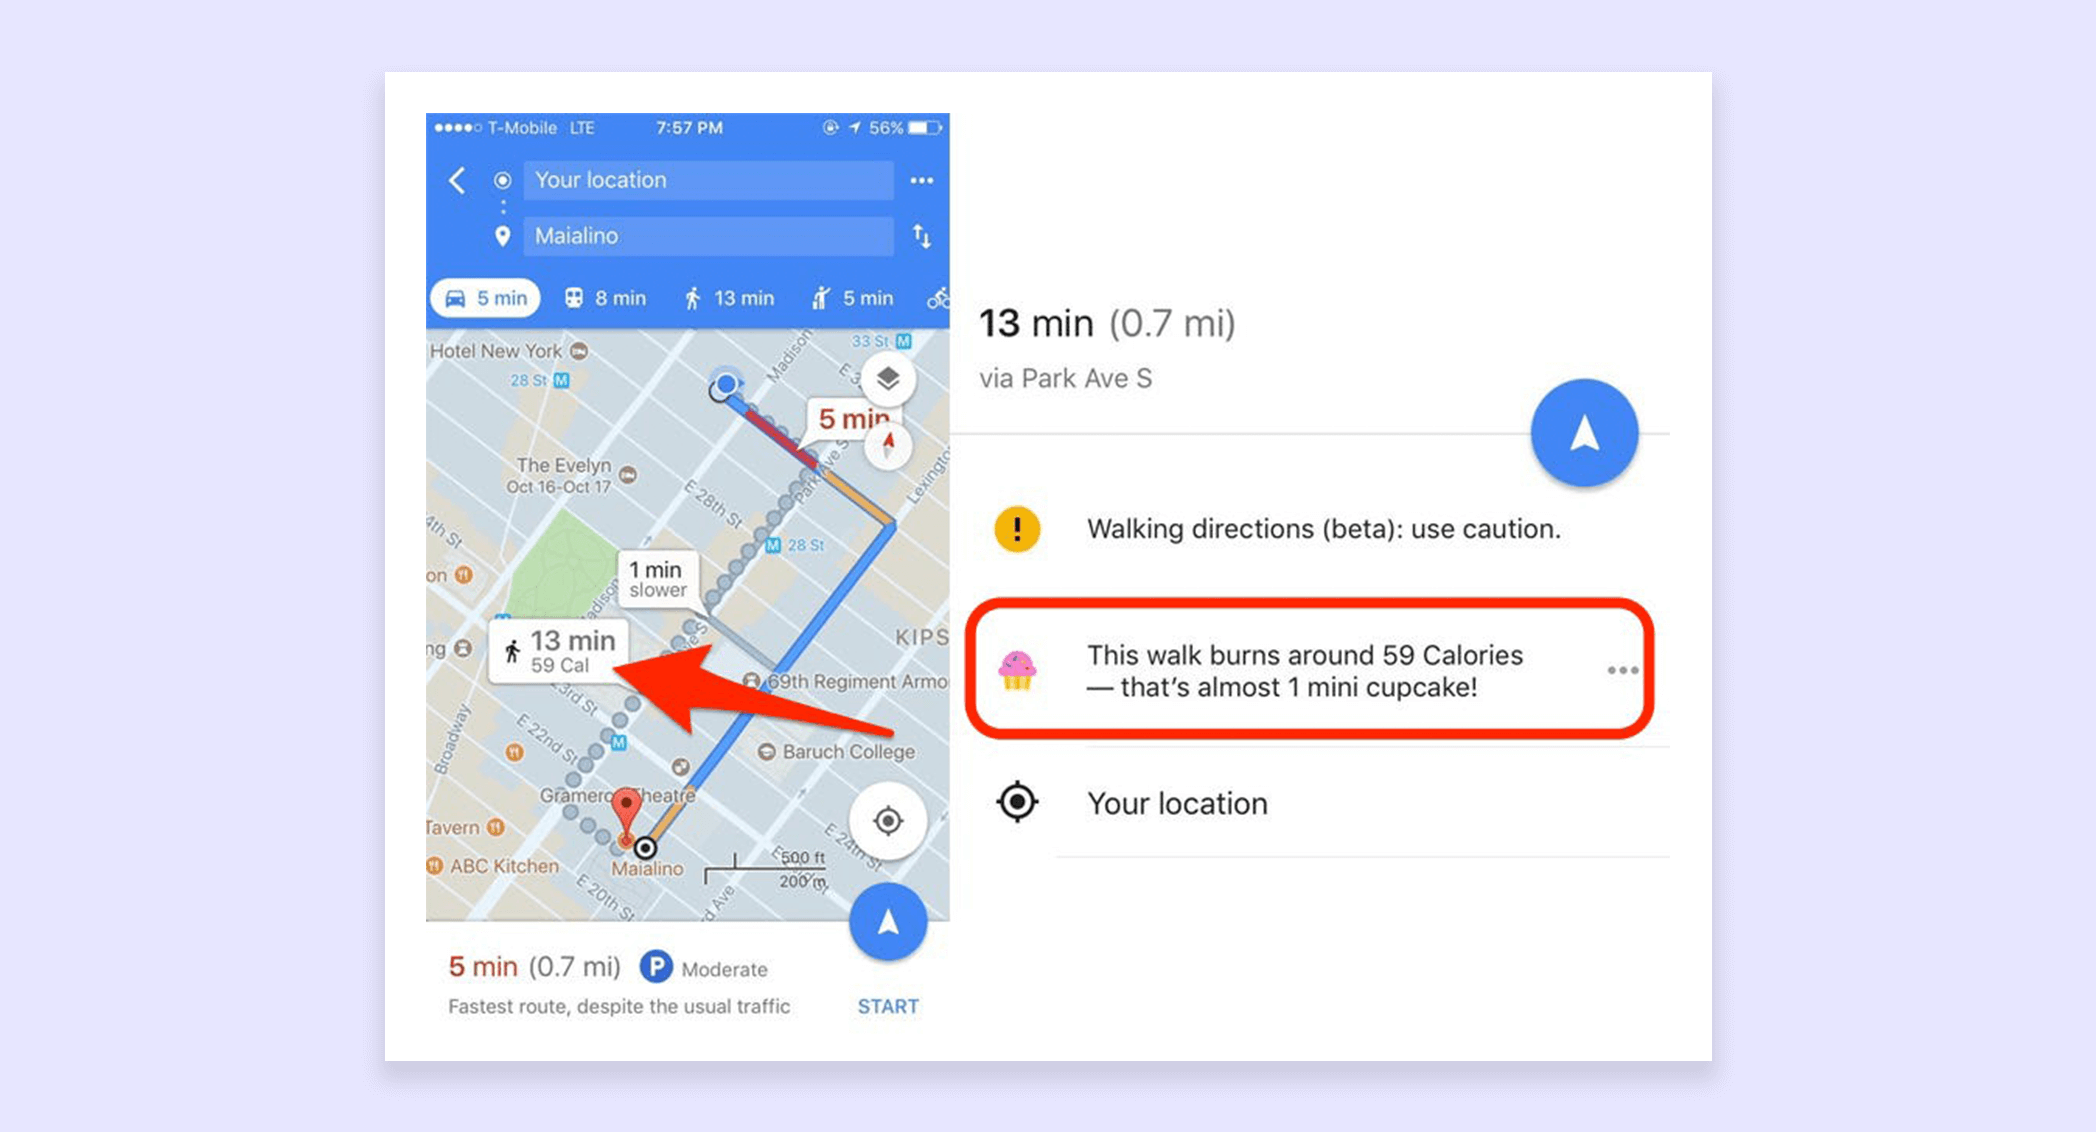 Google's calorie burning feature showing that you could burn 59 calories—almost one mini cupcake—if you walked the route instead.